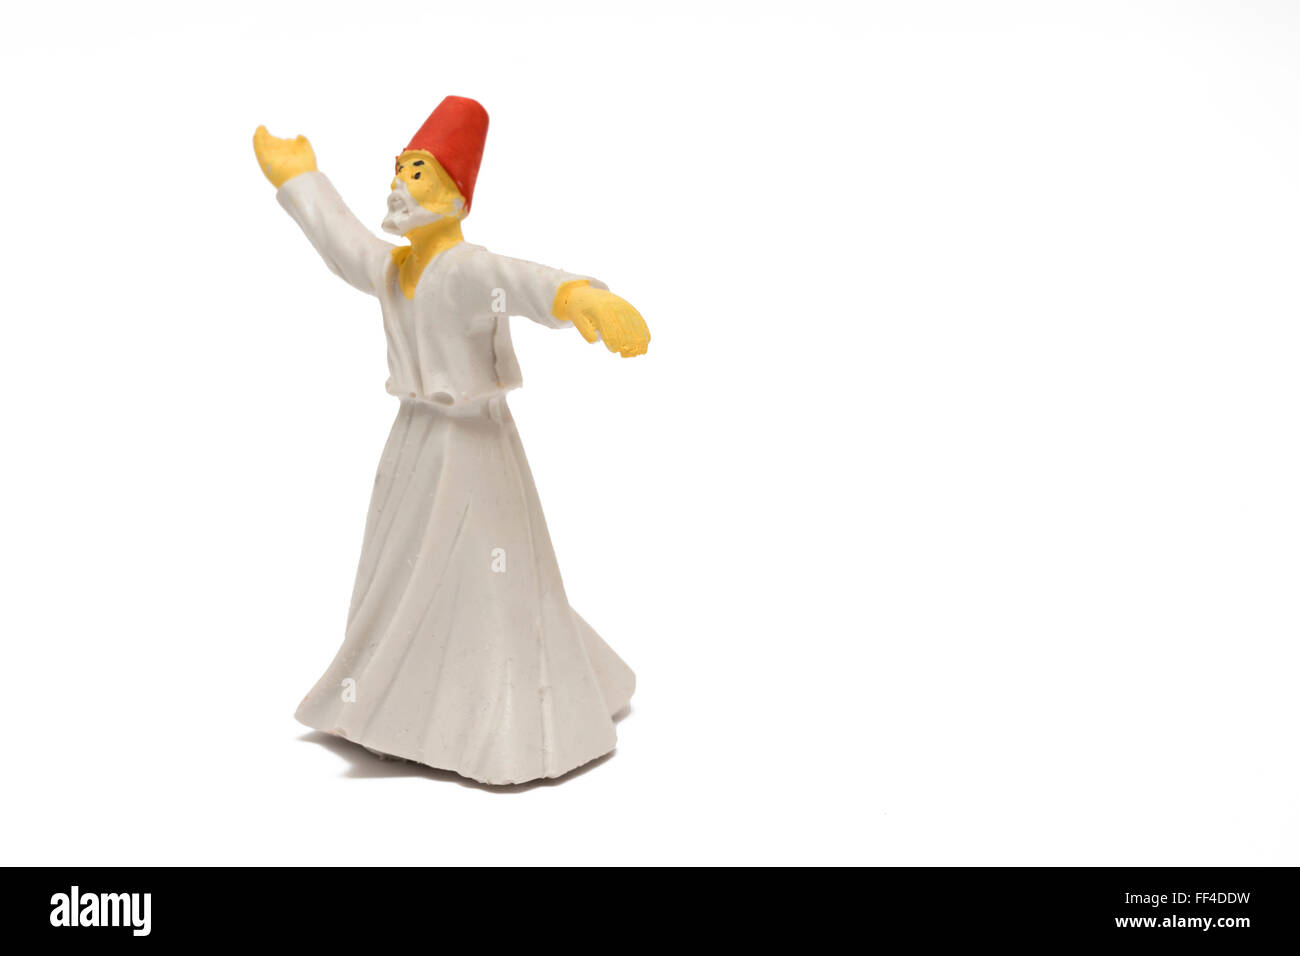 Whirling dervish isolated on white background - Stock Image